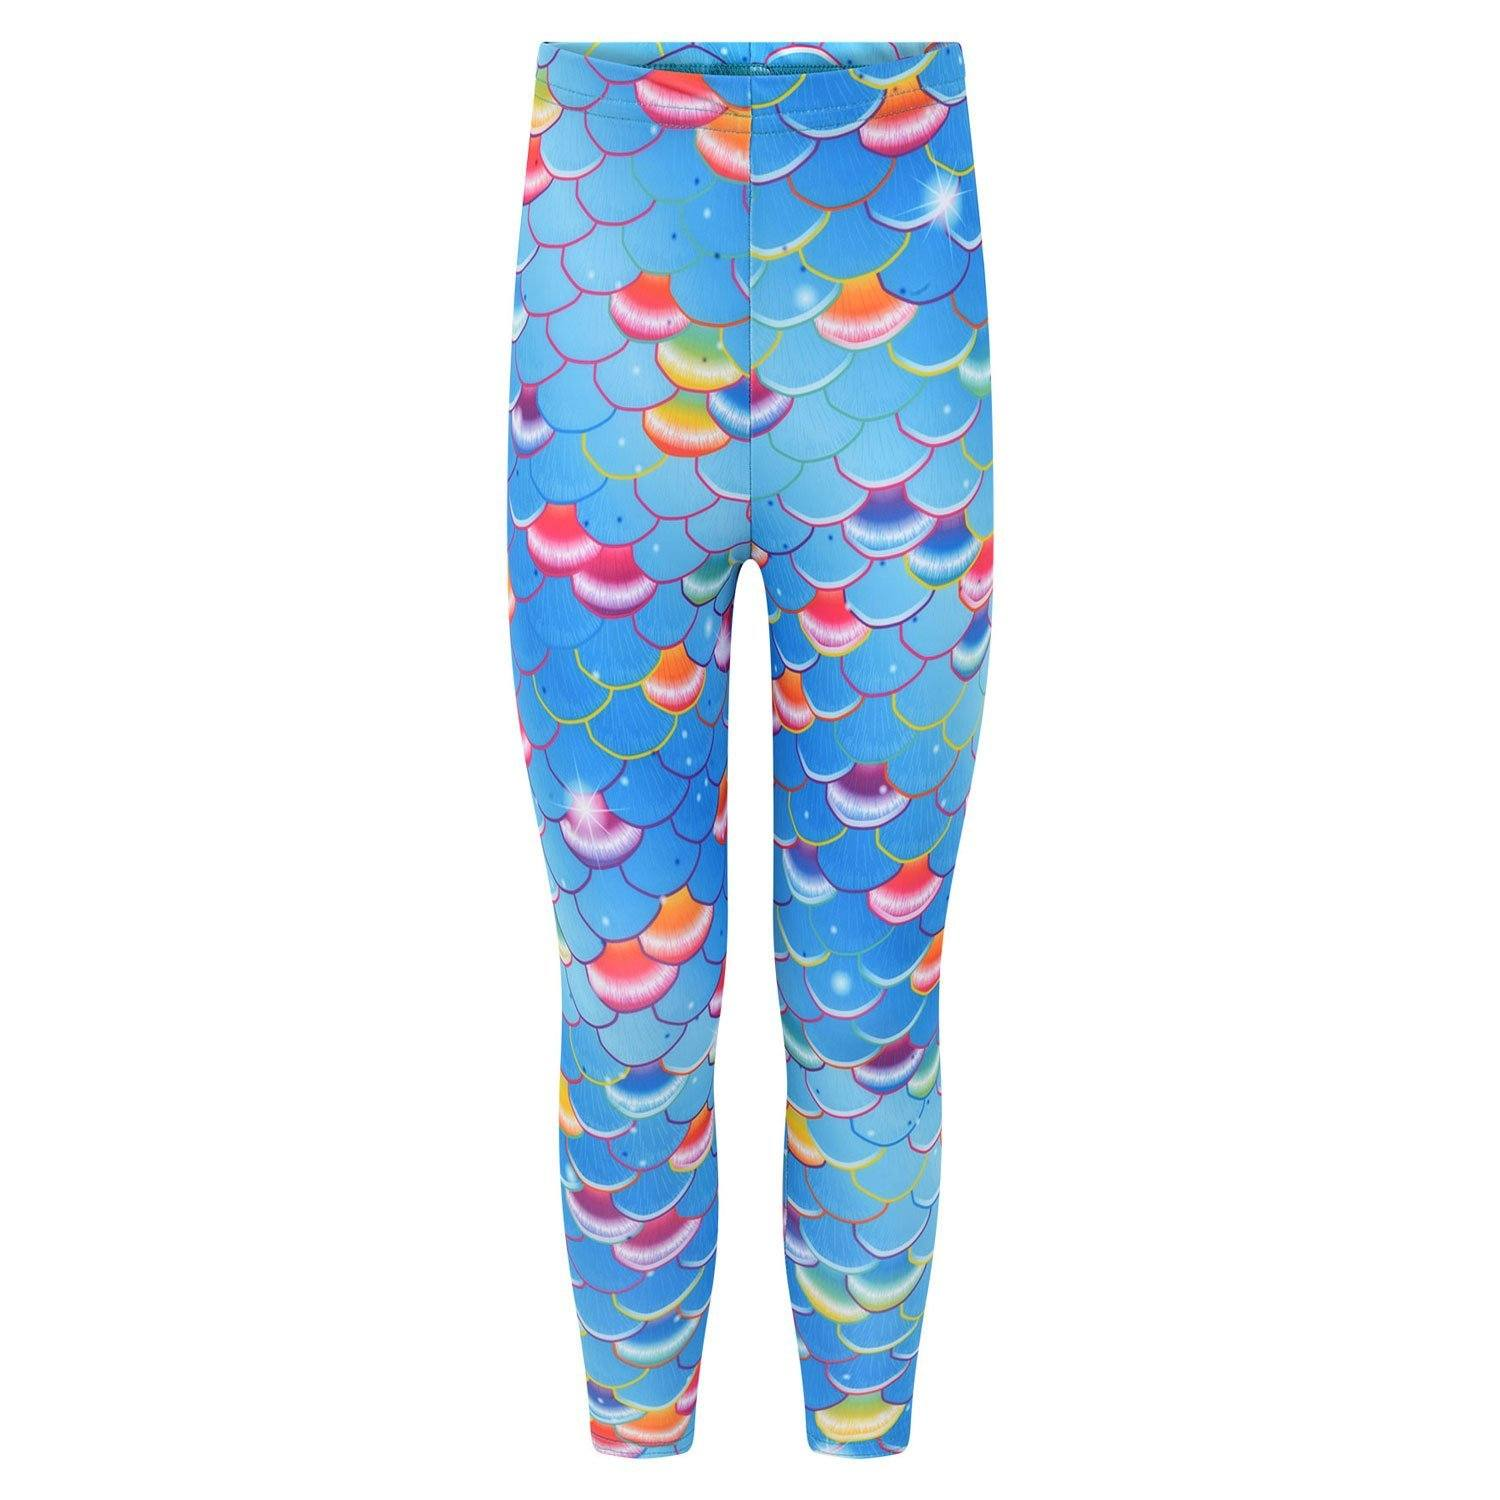 Pacific Rainbow Mermaid Leggings